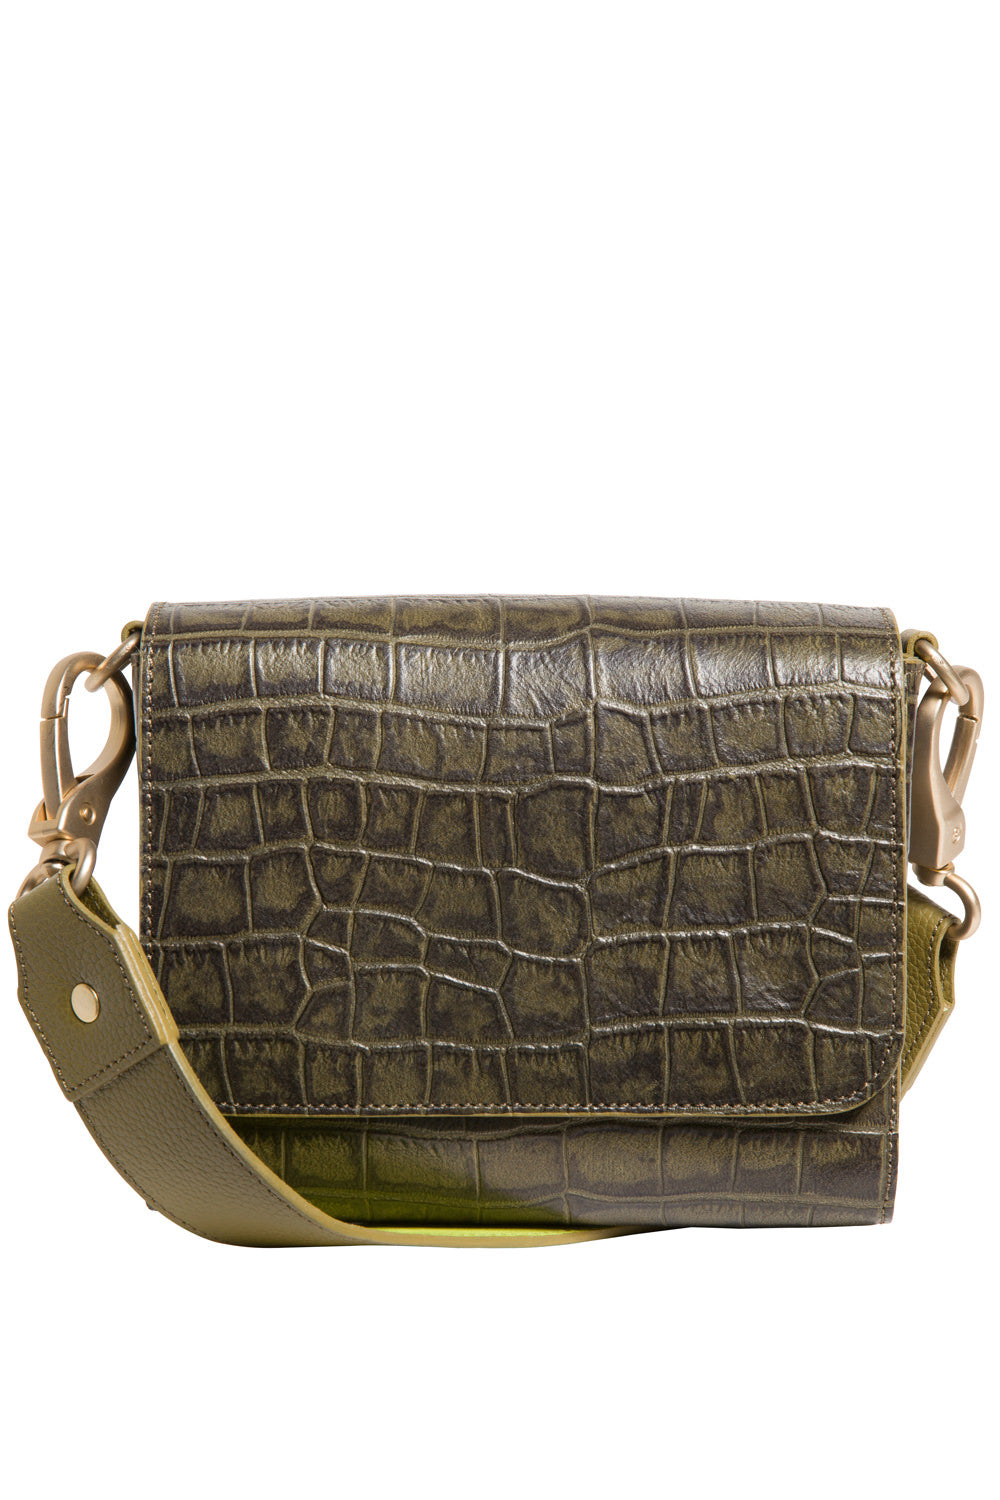 'Gema' Small Shoulder Bag in Green Moss, Croc-Emboss Leather | Mel Boteri | Front View